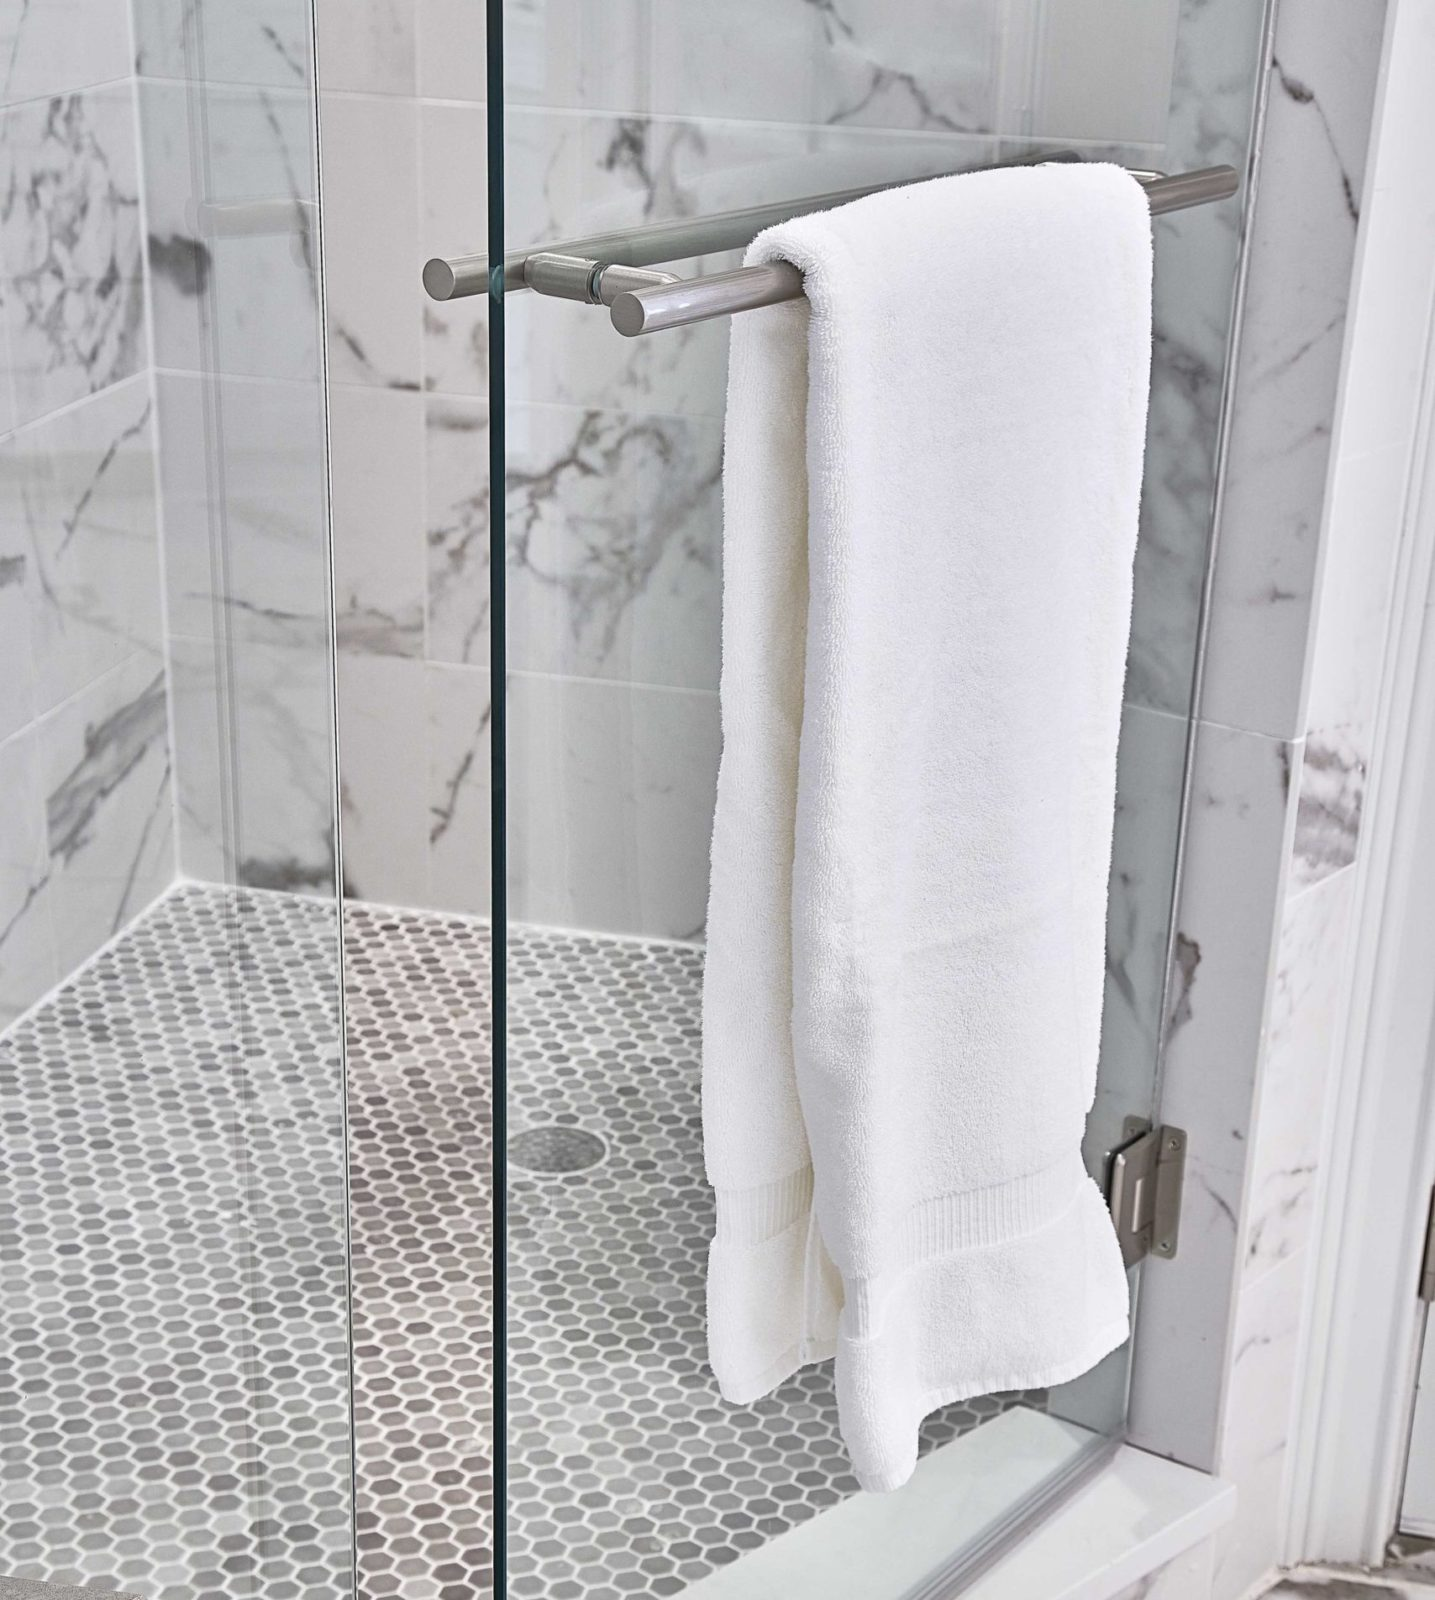 revision-design-towel-bar-in-shower-glass